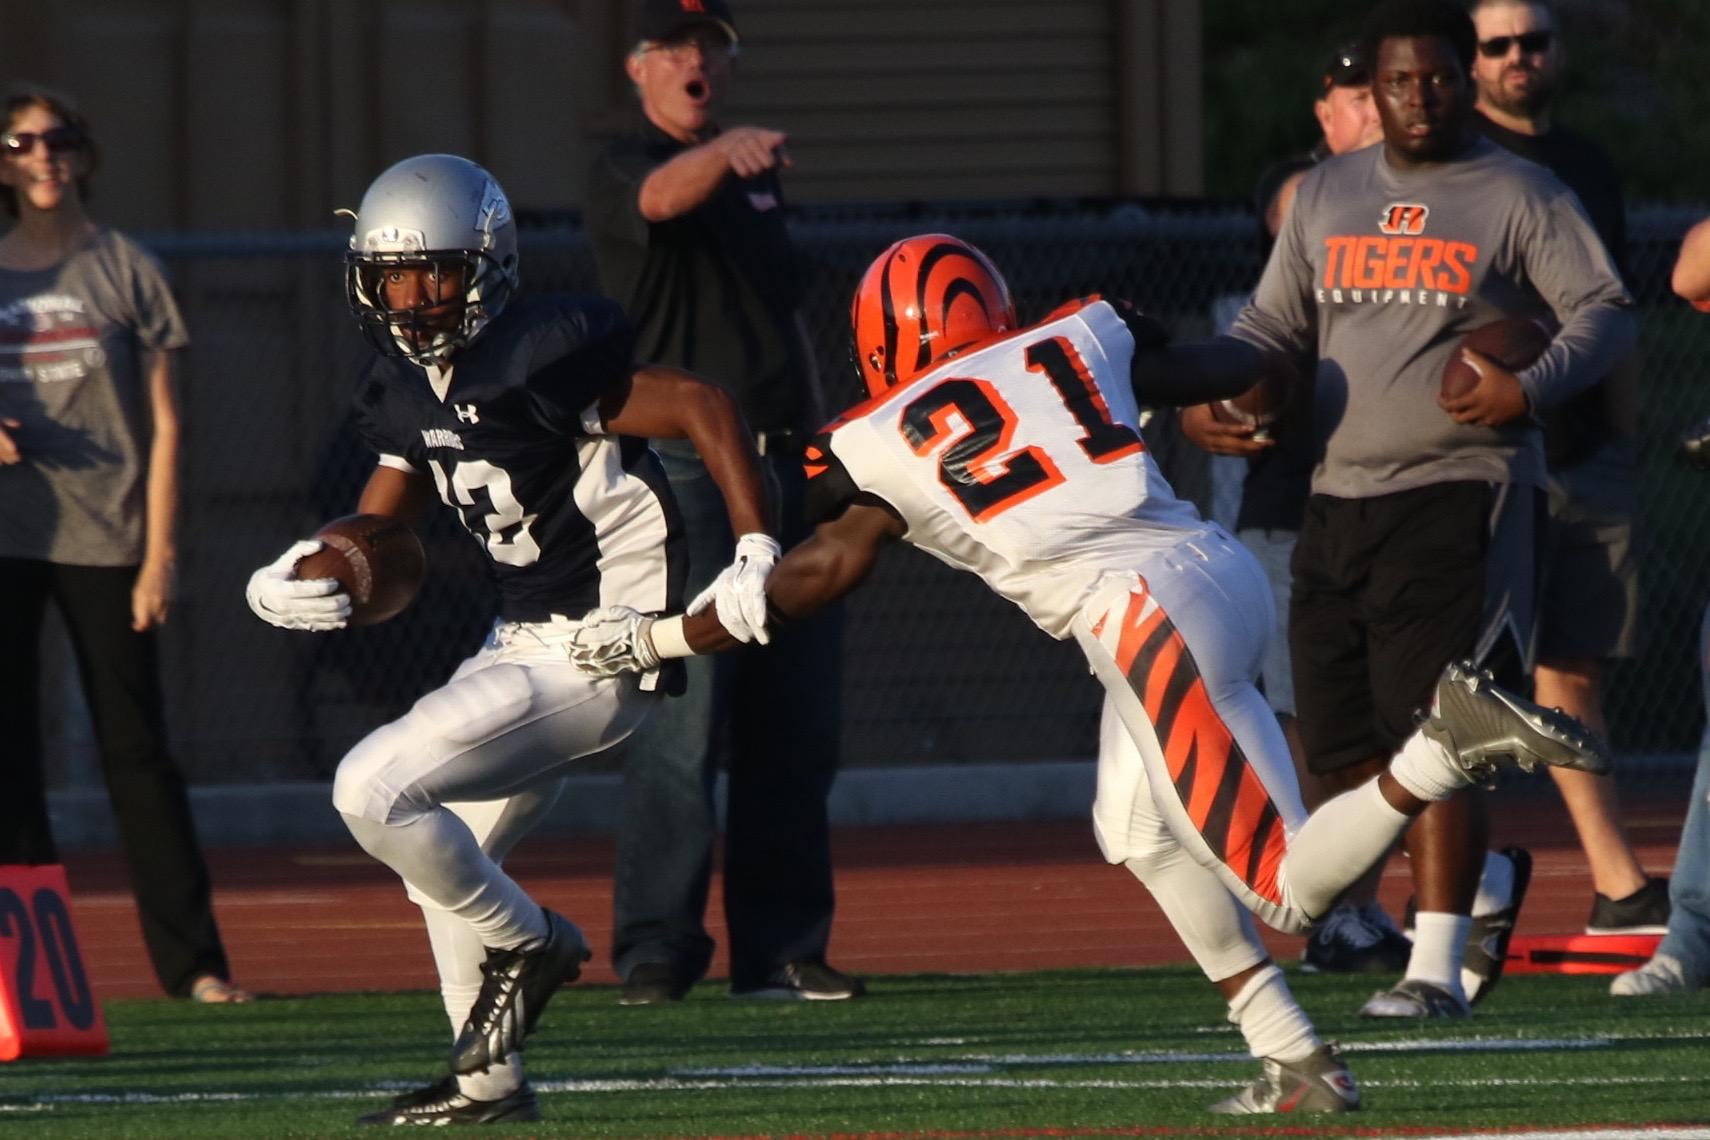 Freshman wide receiver Dajuan Parham makes a run up the field to gain some yards against Riverside City College Saturday Oct. 3 game at Redondo Union. The Warriors fell to Riverside, 42-21. Photo credit: Jackie Romano